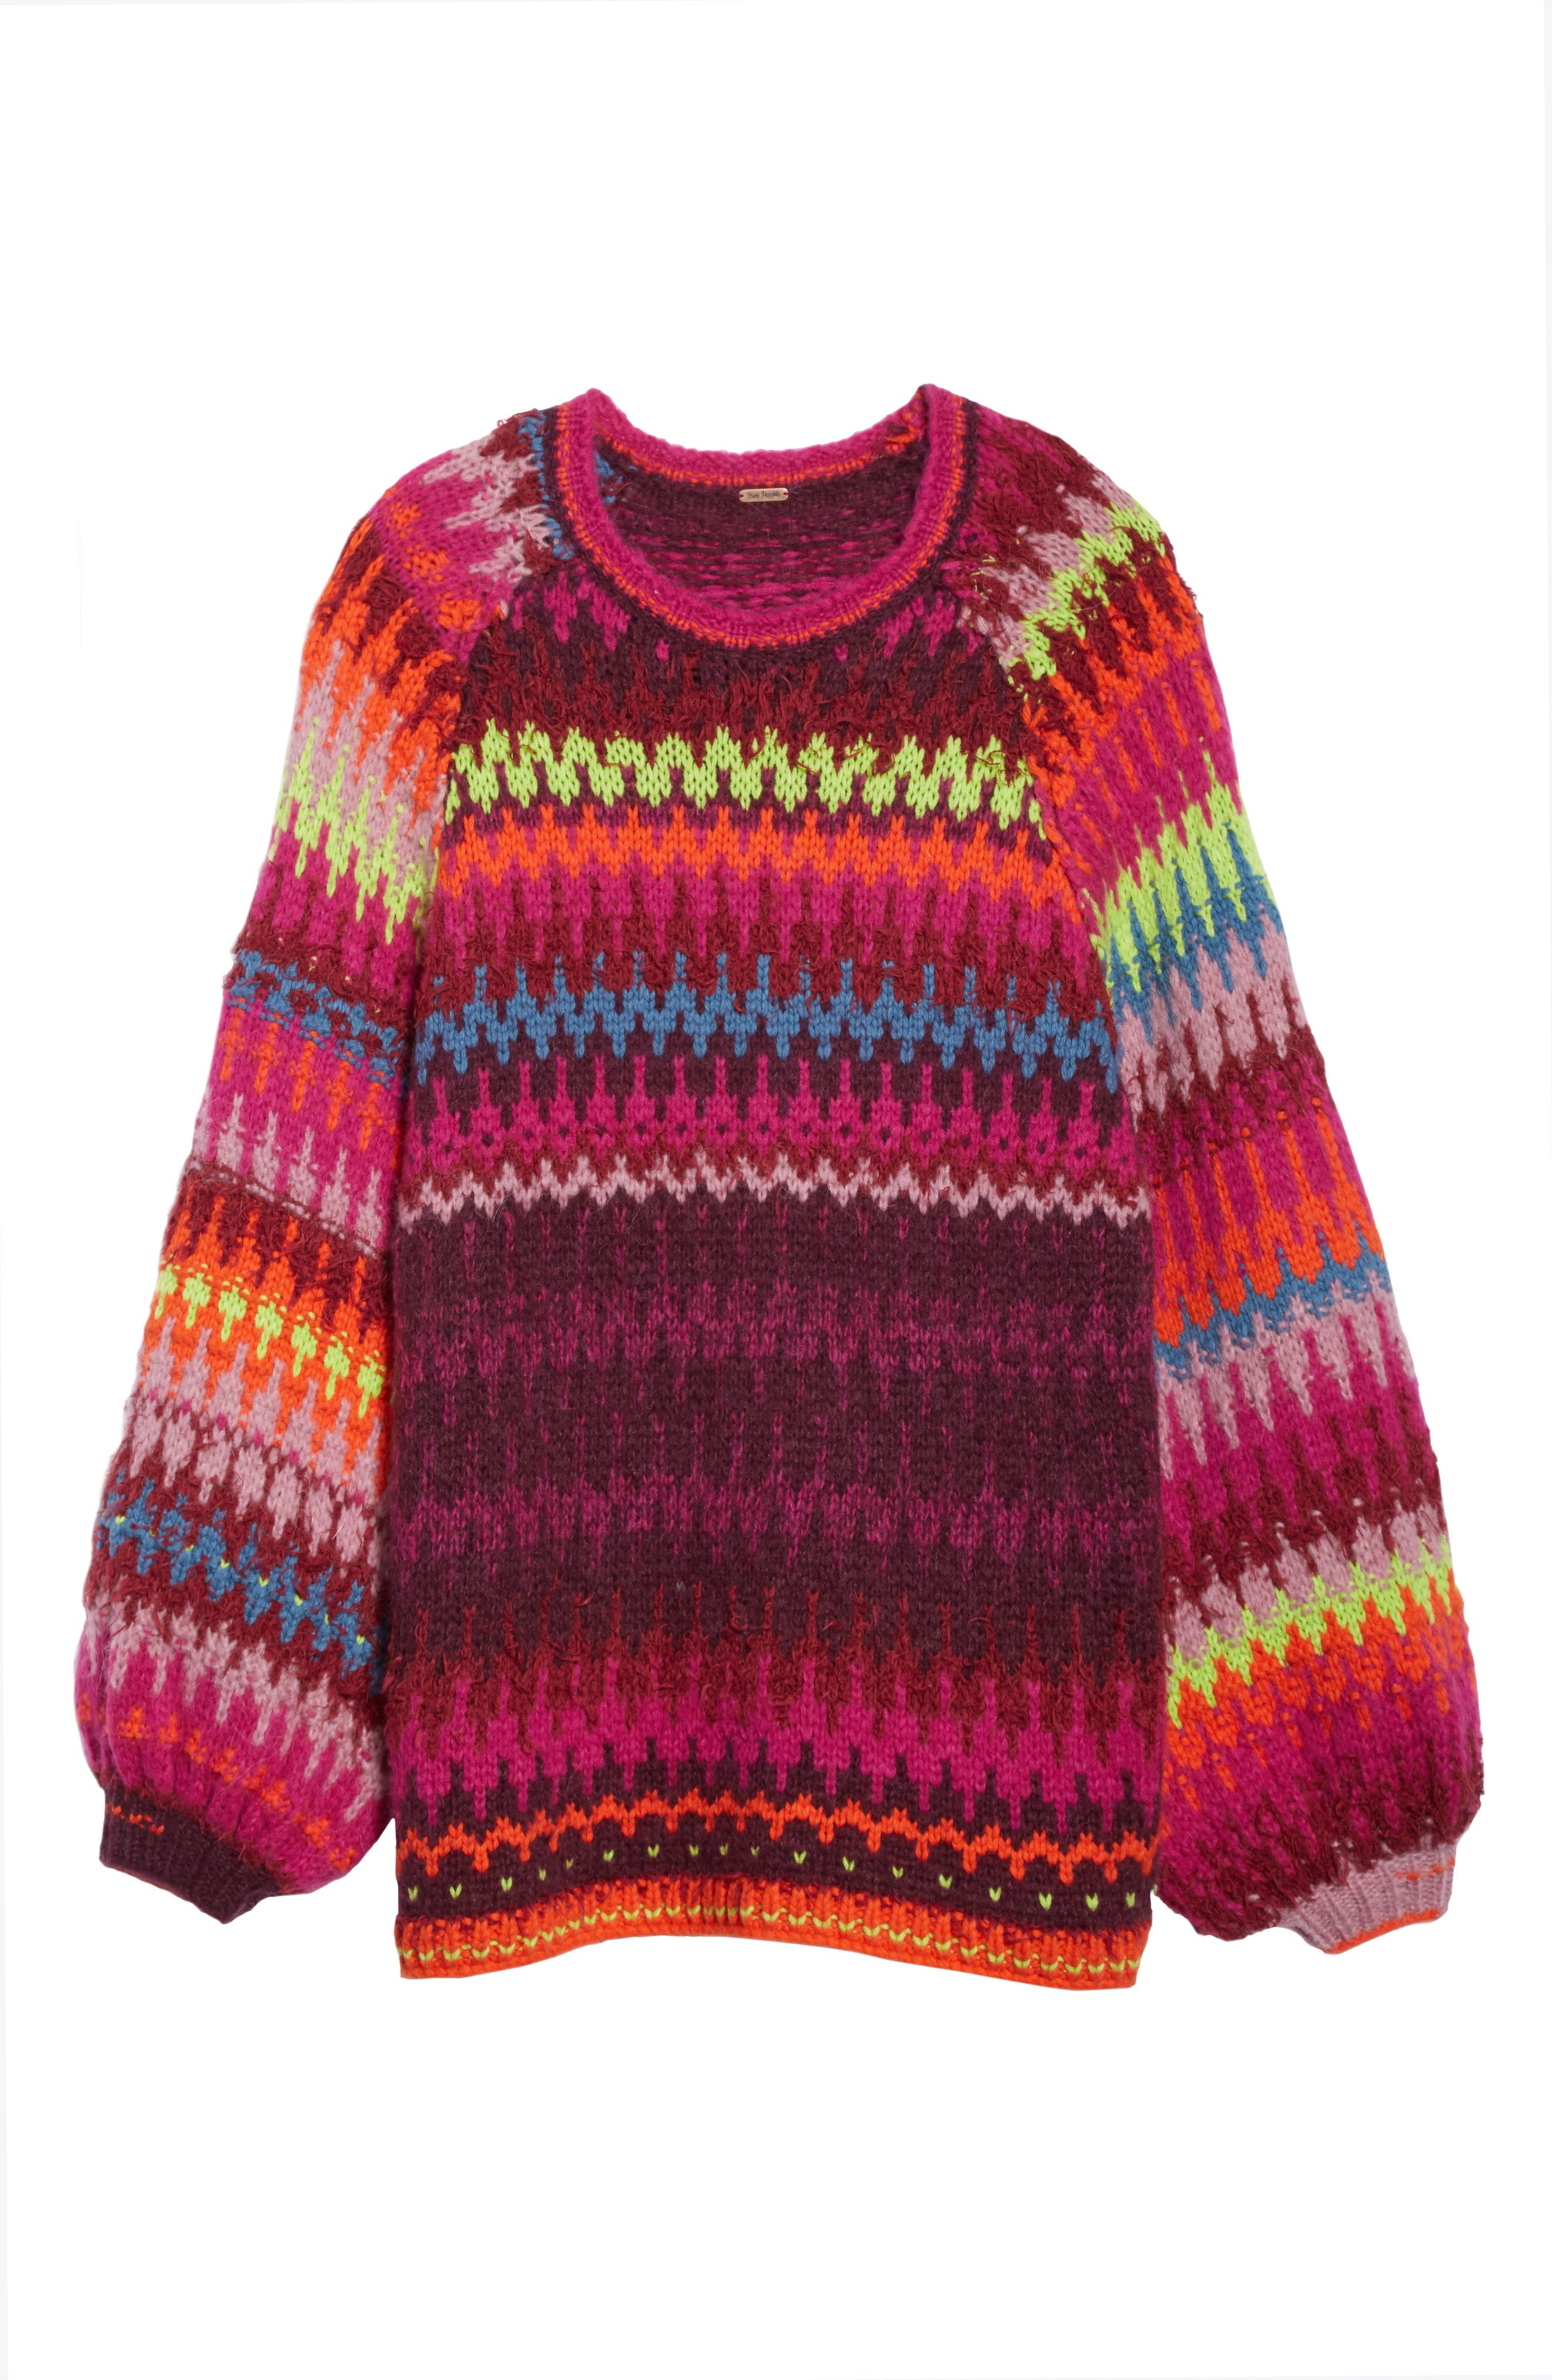 Castles in the Sky Sweater,                             Alternate thumbnail 6, color,                             Multi